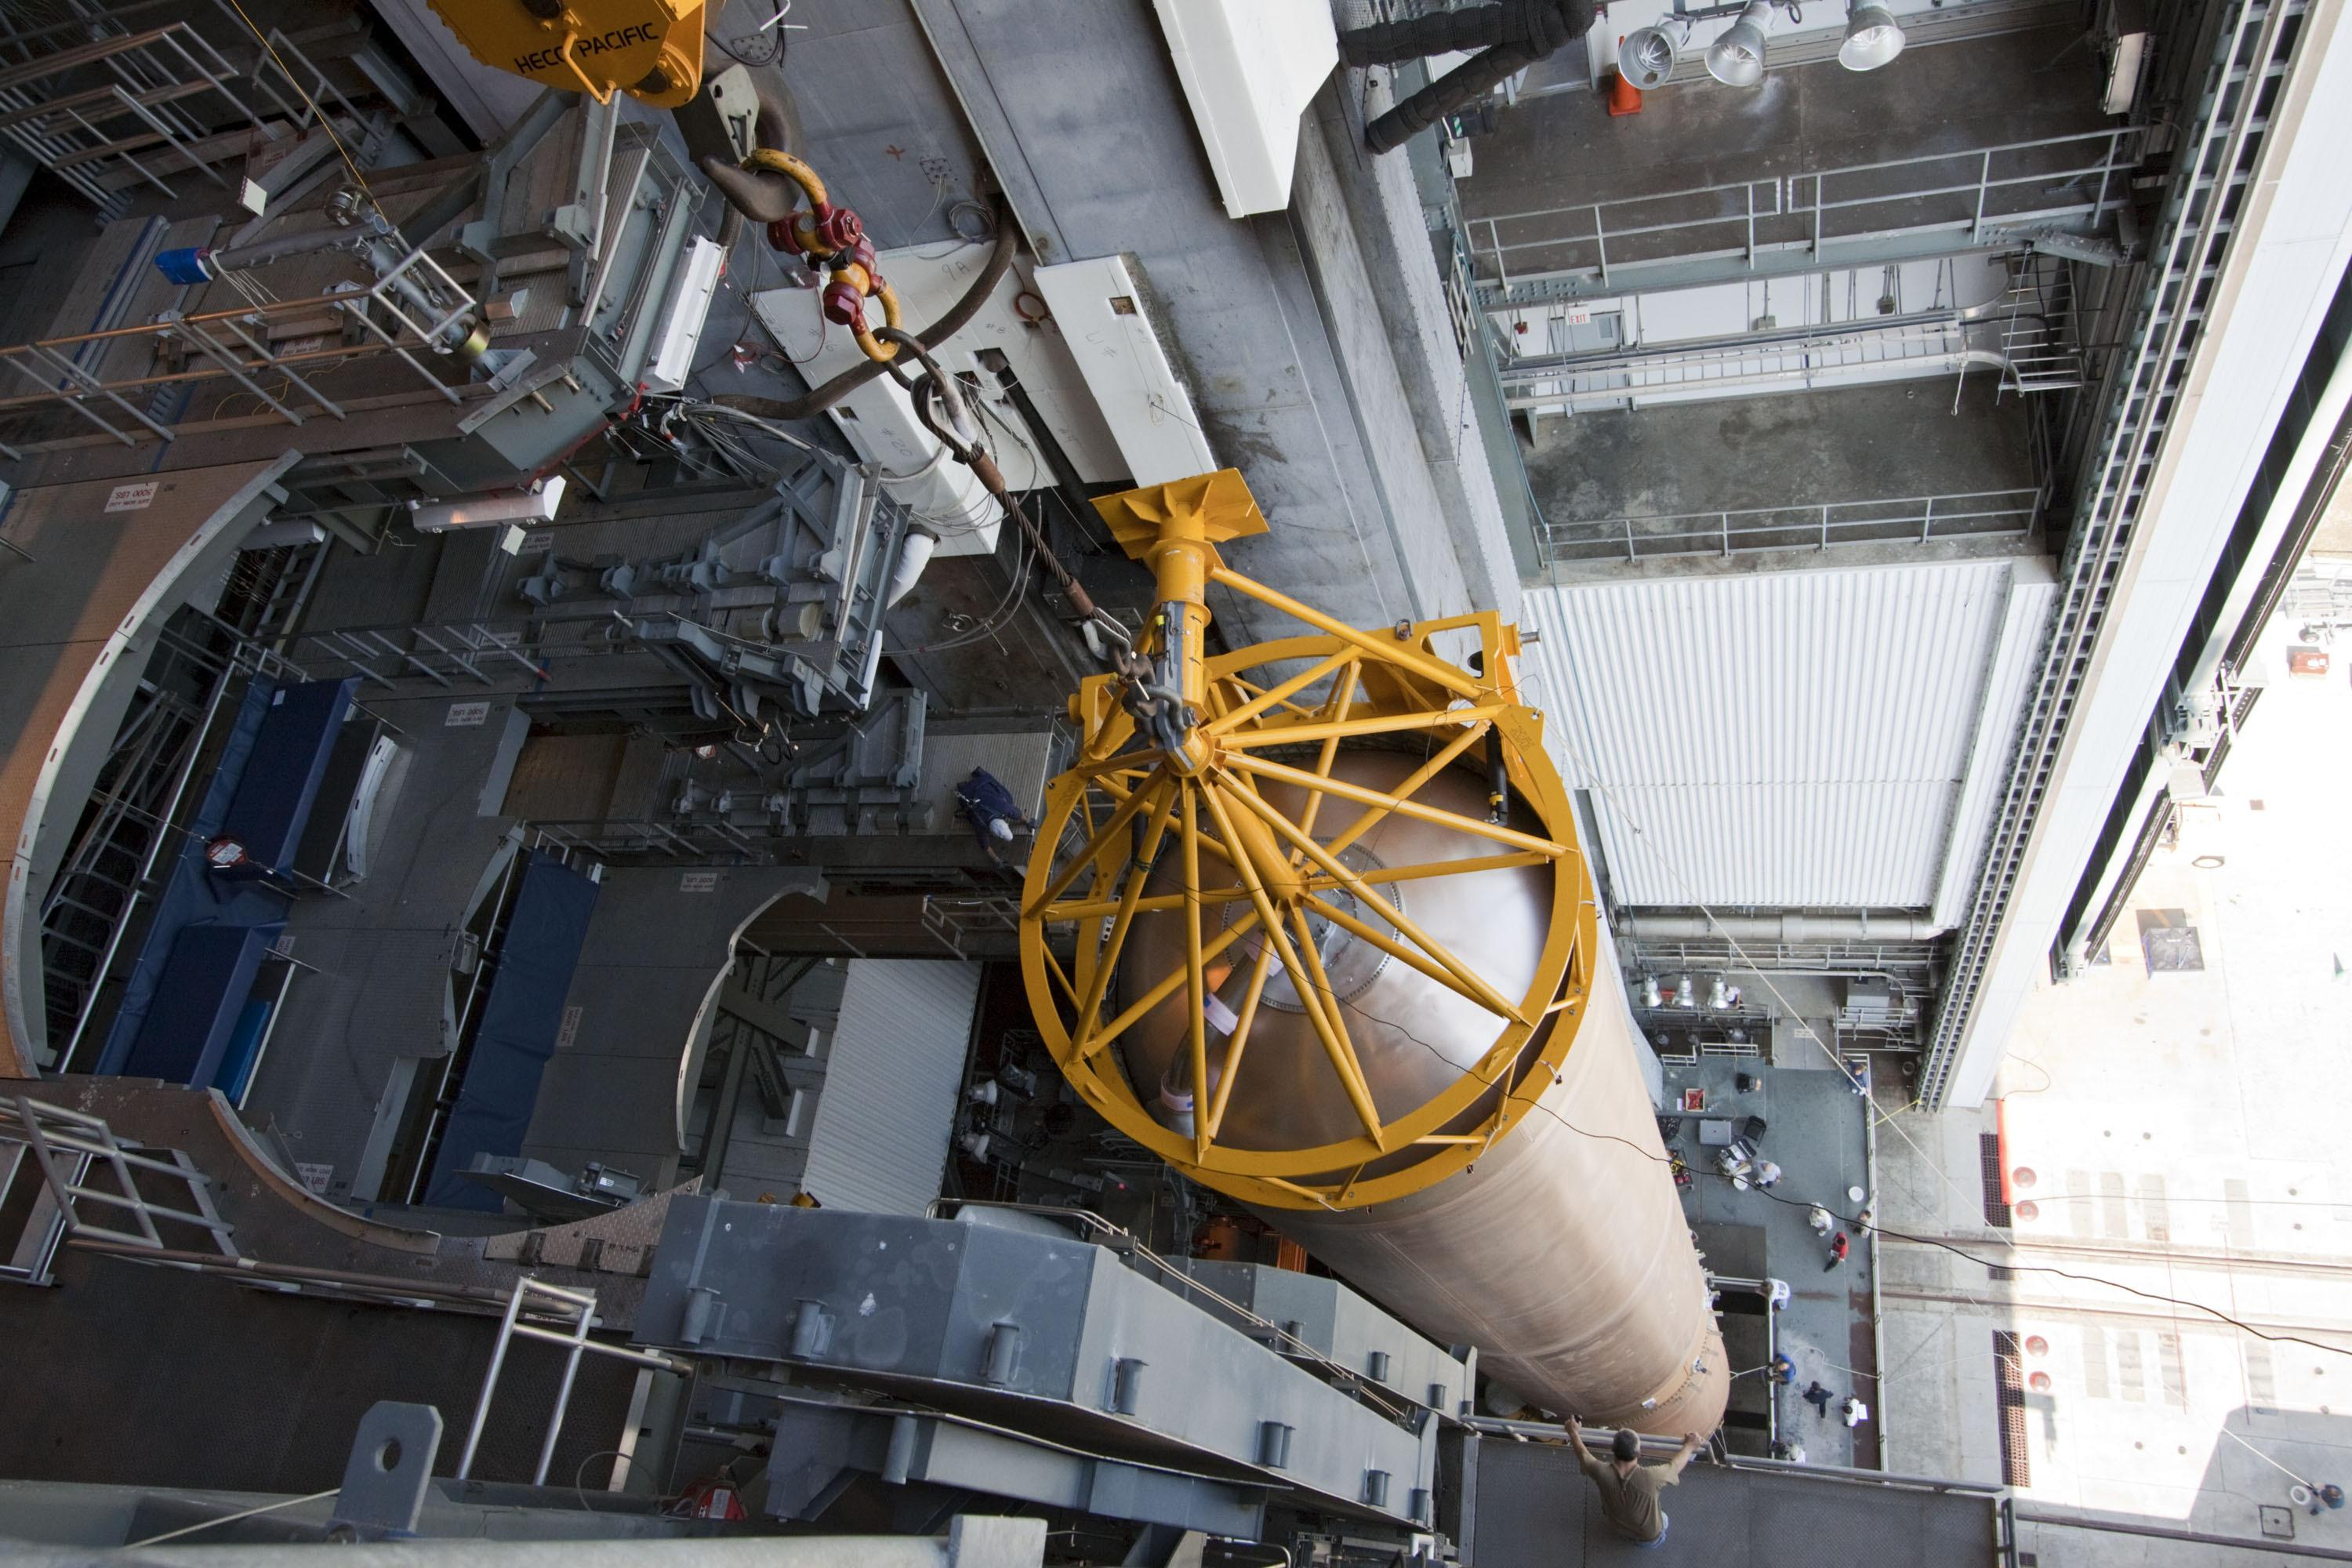 Rocket fuel tank suspended from crane